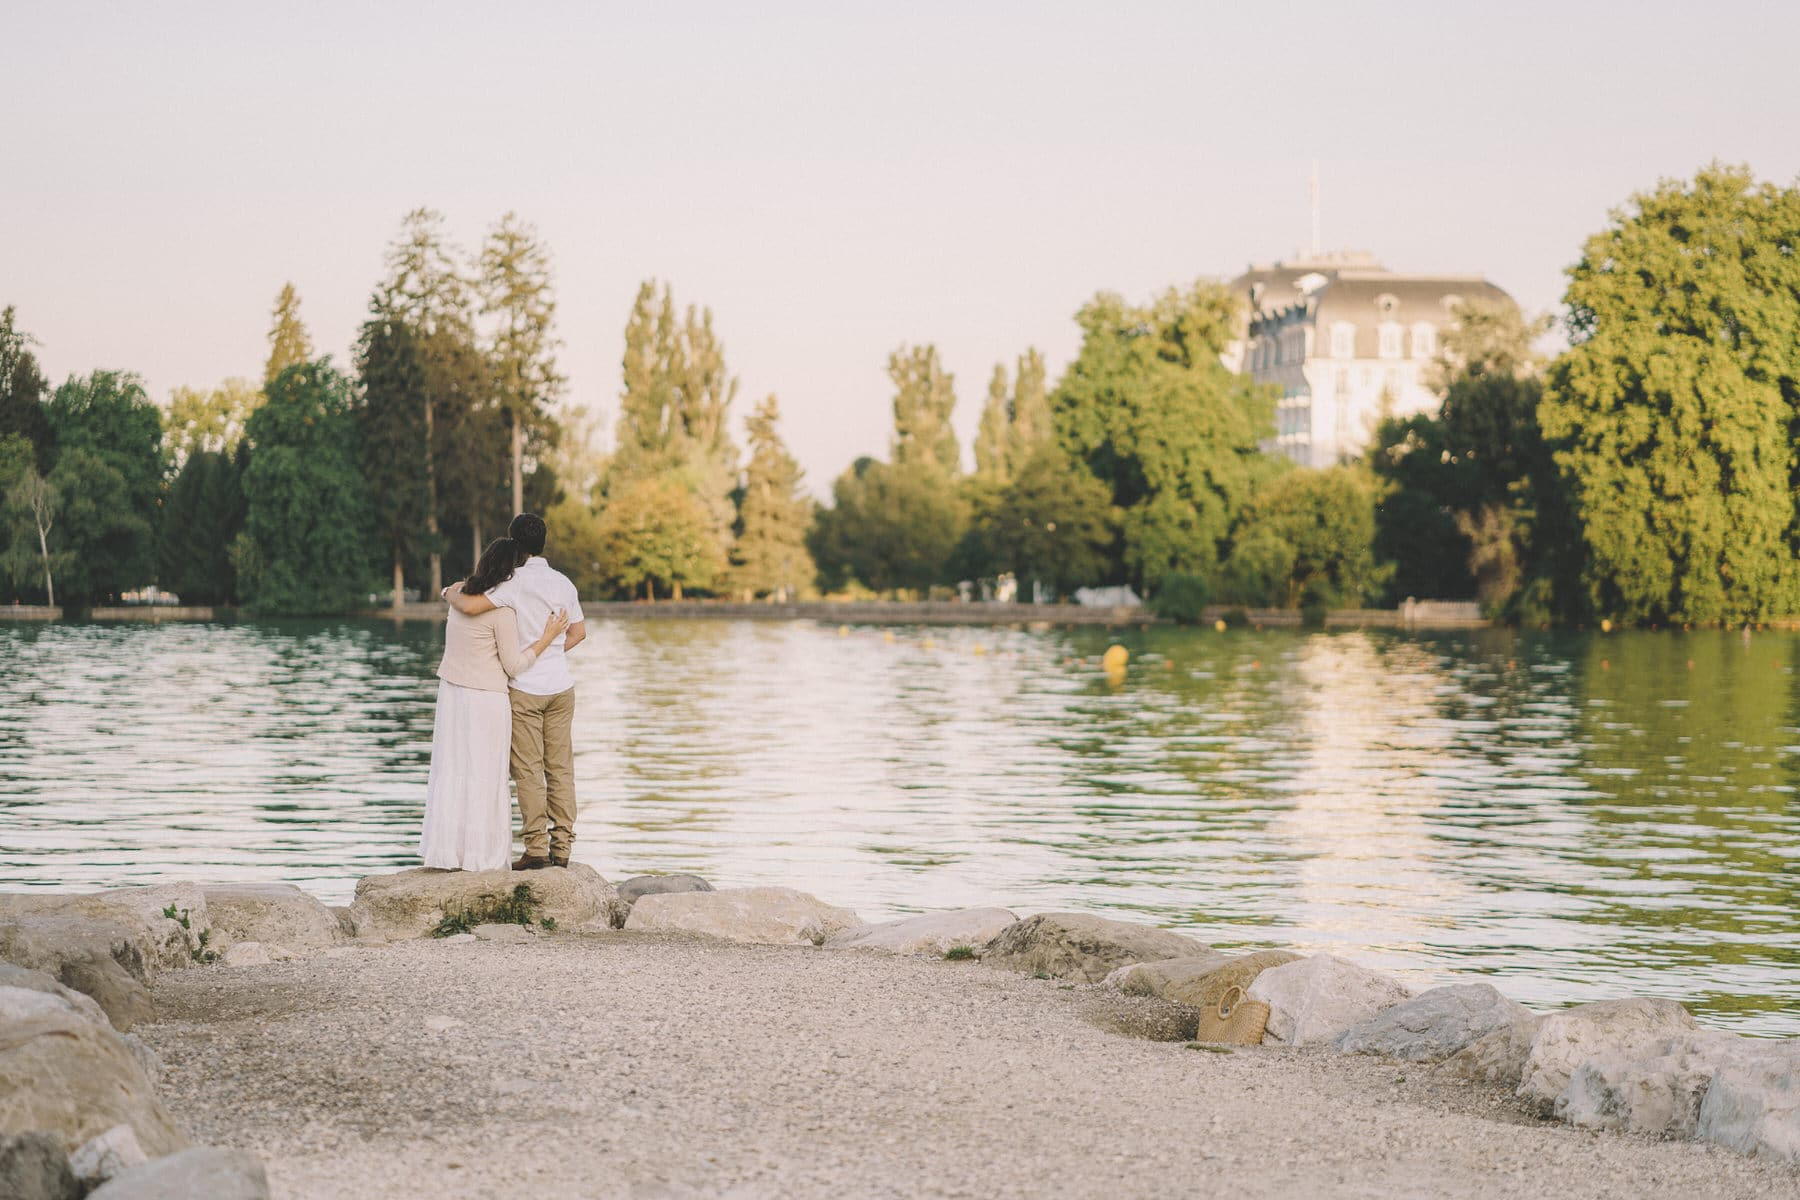 Photographe seance couple annecy geneve